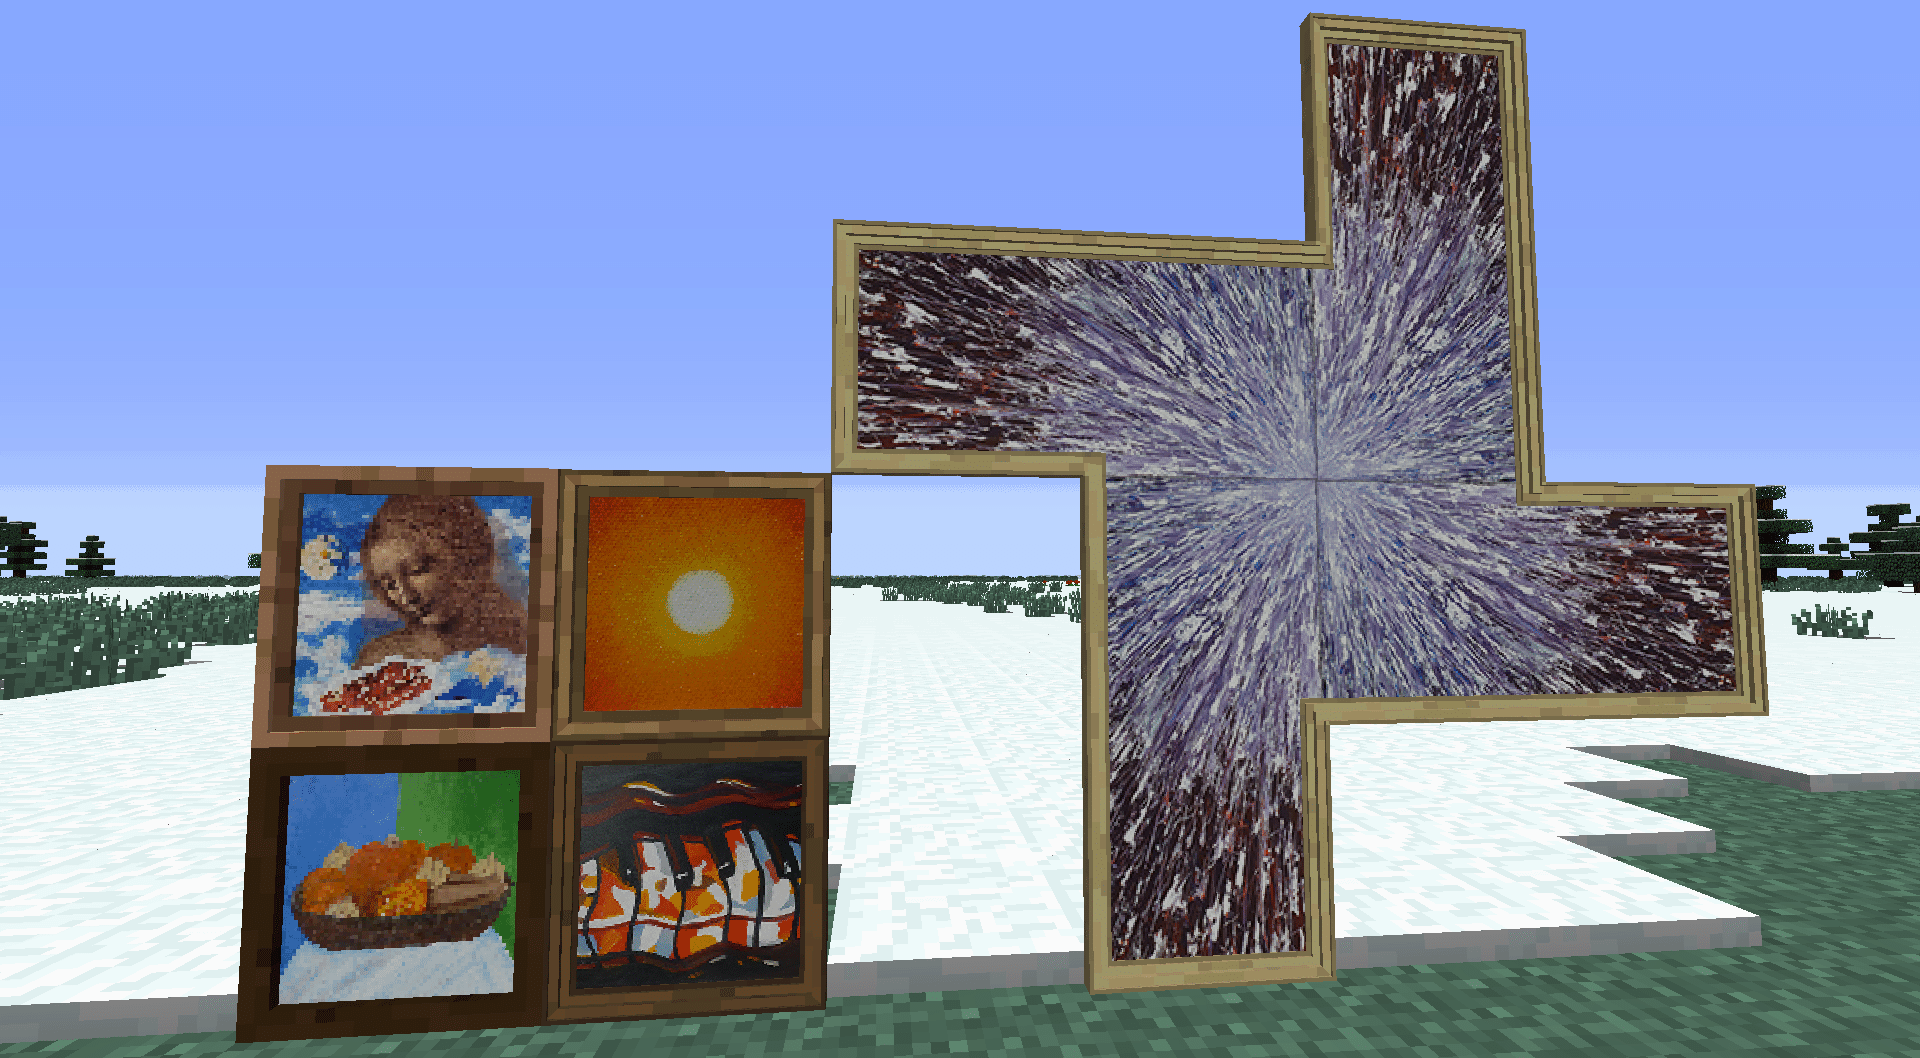 Bibliocraft - Painting Frame